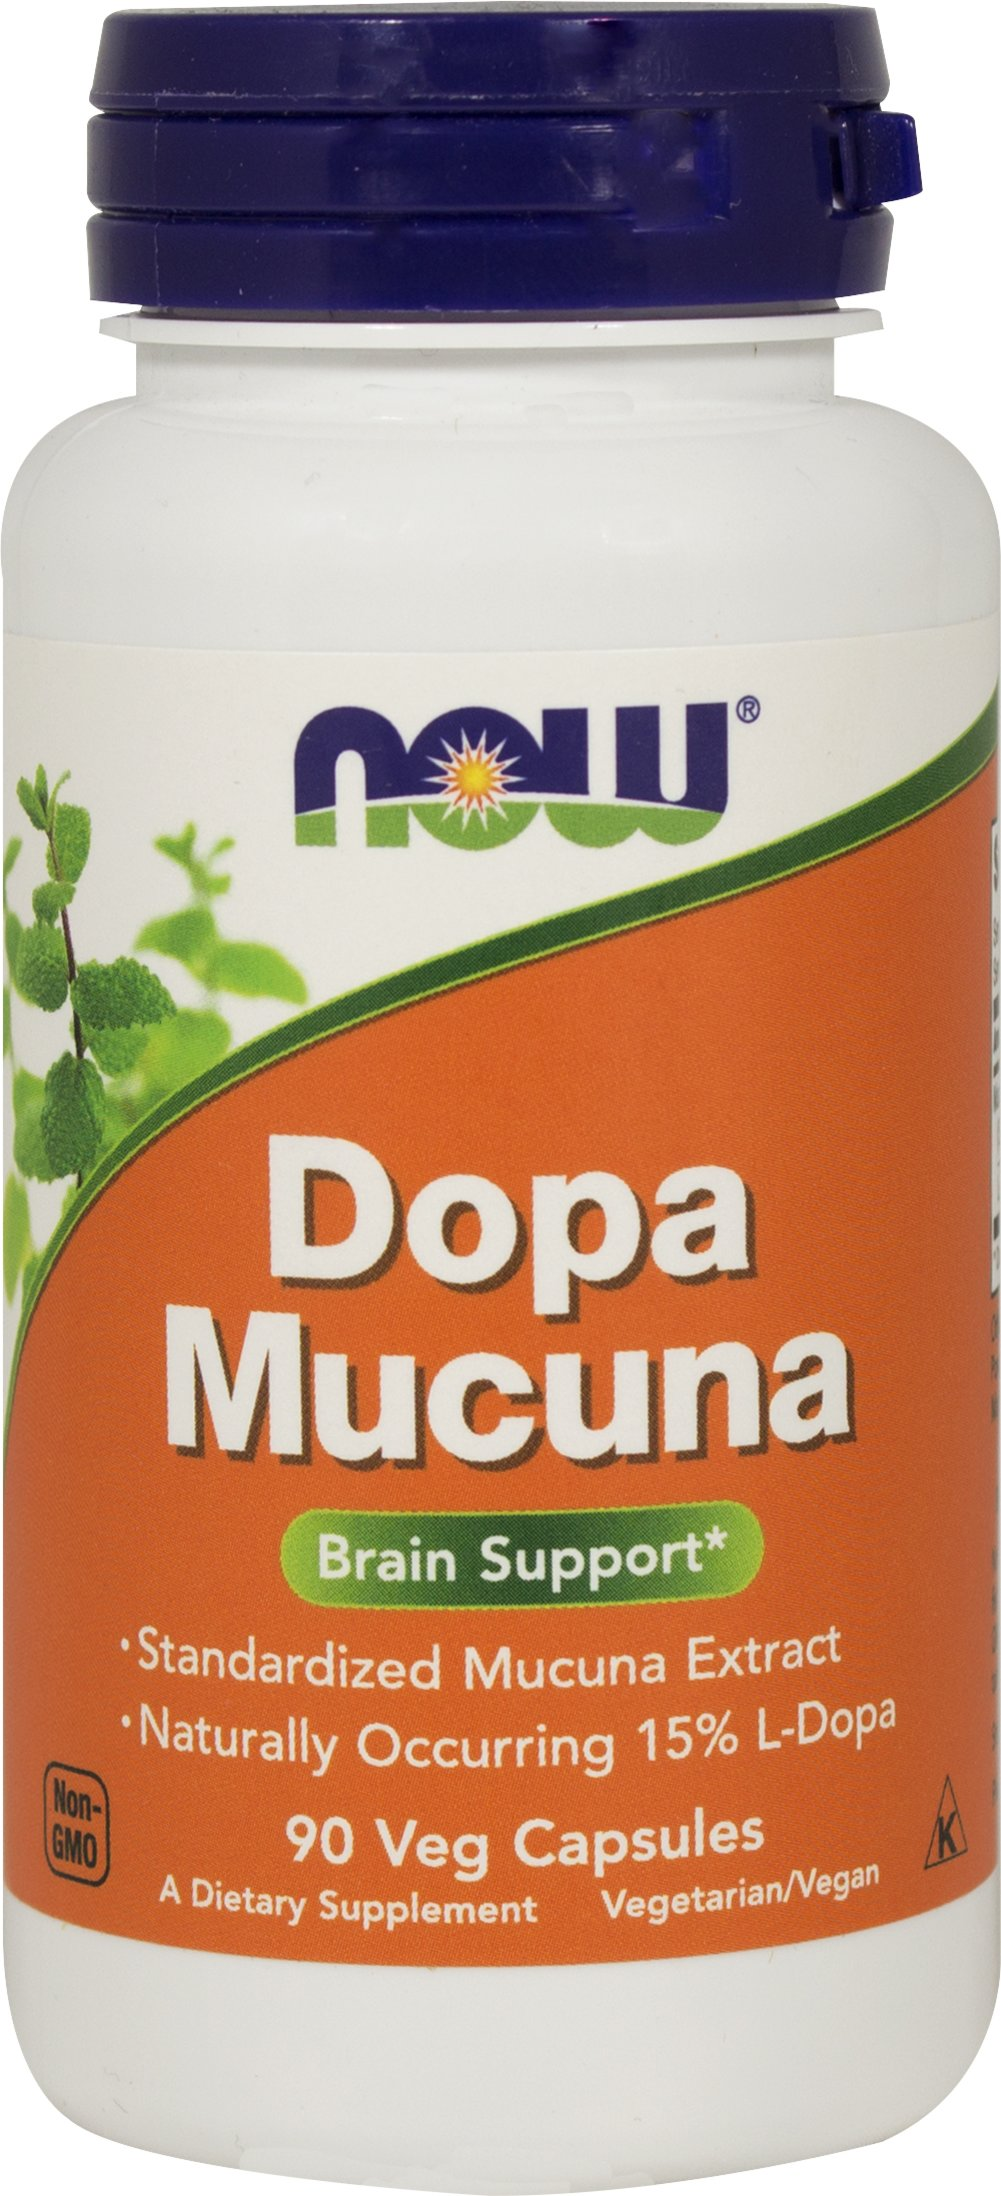 DOPA Mucuna 400 mg <p><b>From the Manufacturer's Label:</b></p>  <p><b>Standardized Velvet Bean Extract</b></p> <p><b>Mucuna pruriens</b></p>  Mucuna pruriens, commonly known as Velvet Bean, has been used in the traditional Ayurvedic system in India for thousands of years. NOW® DOPA Mucuna is 100% vegetarian**.</p> <p>Manufactured by Now® Foods</p>  90 Vegi Caps 400 mg $11.49